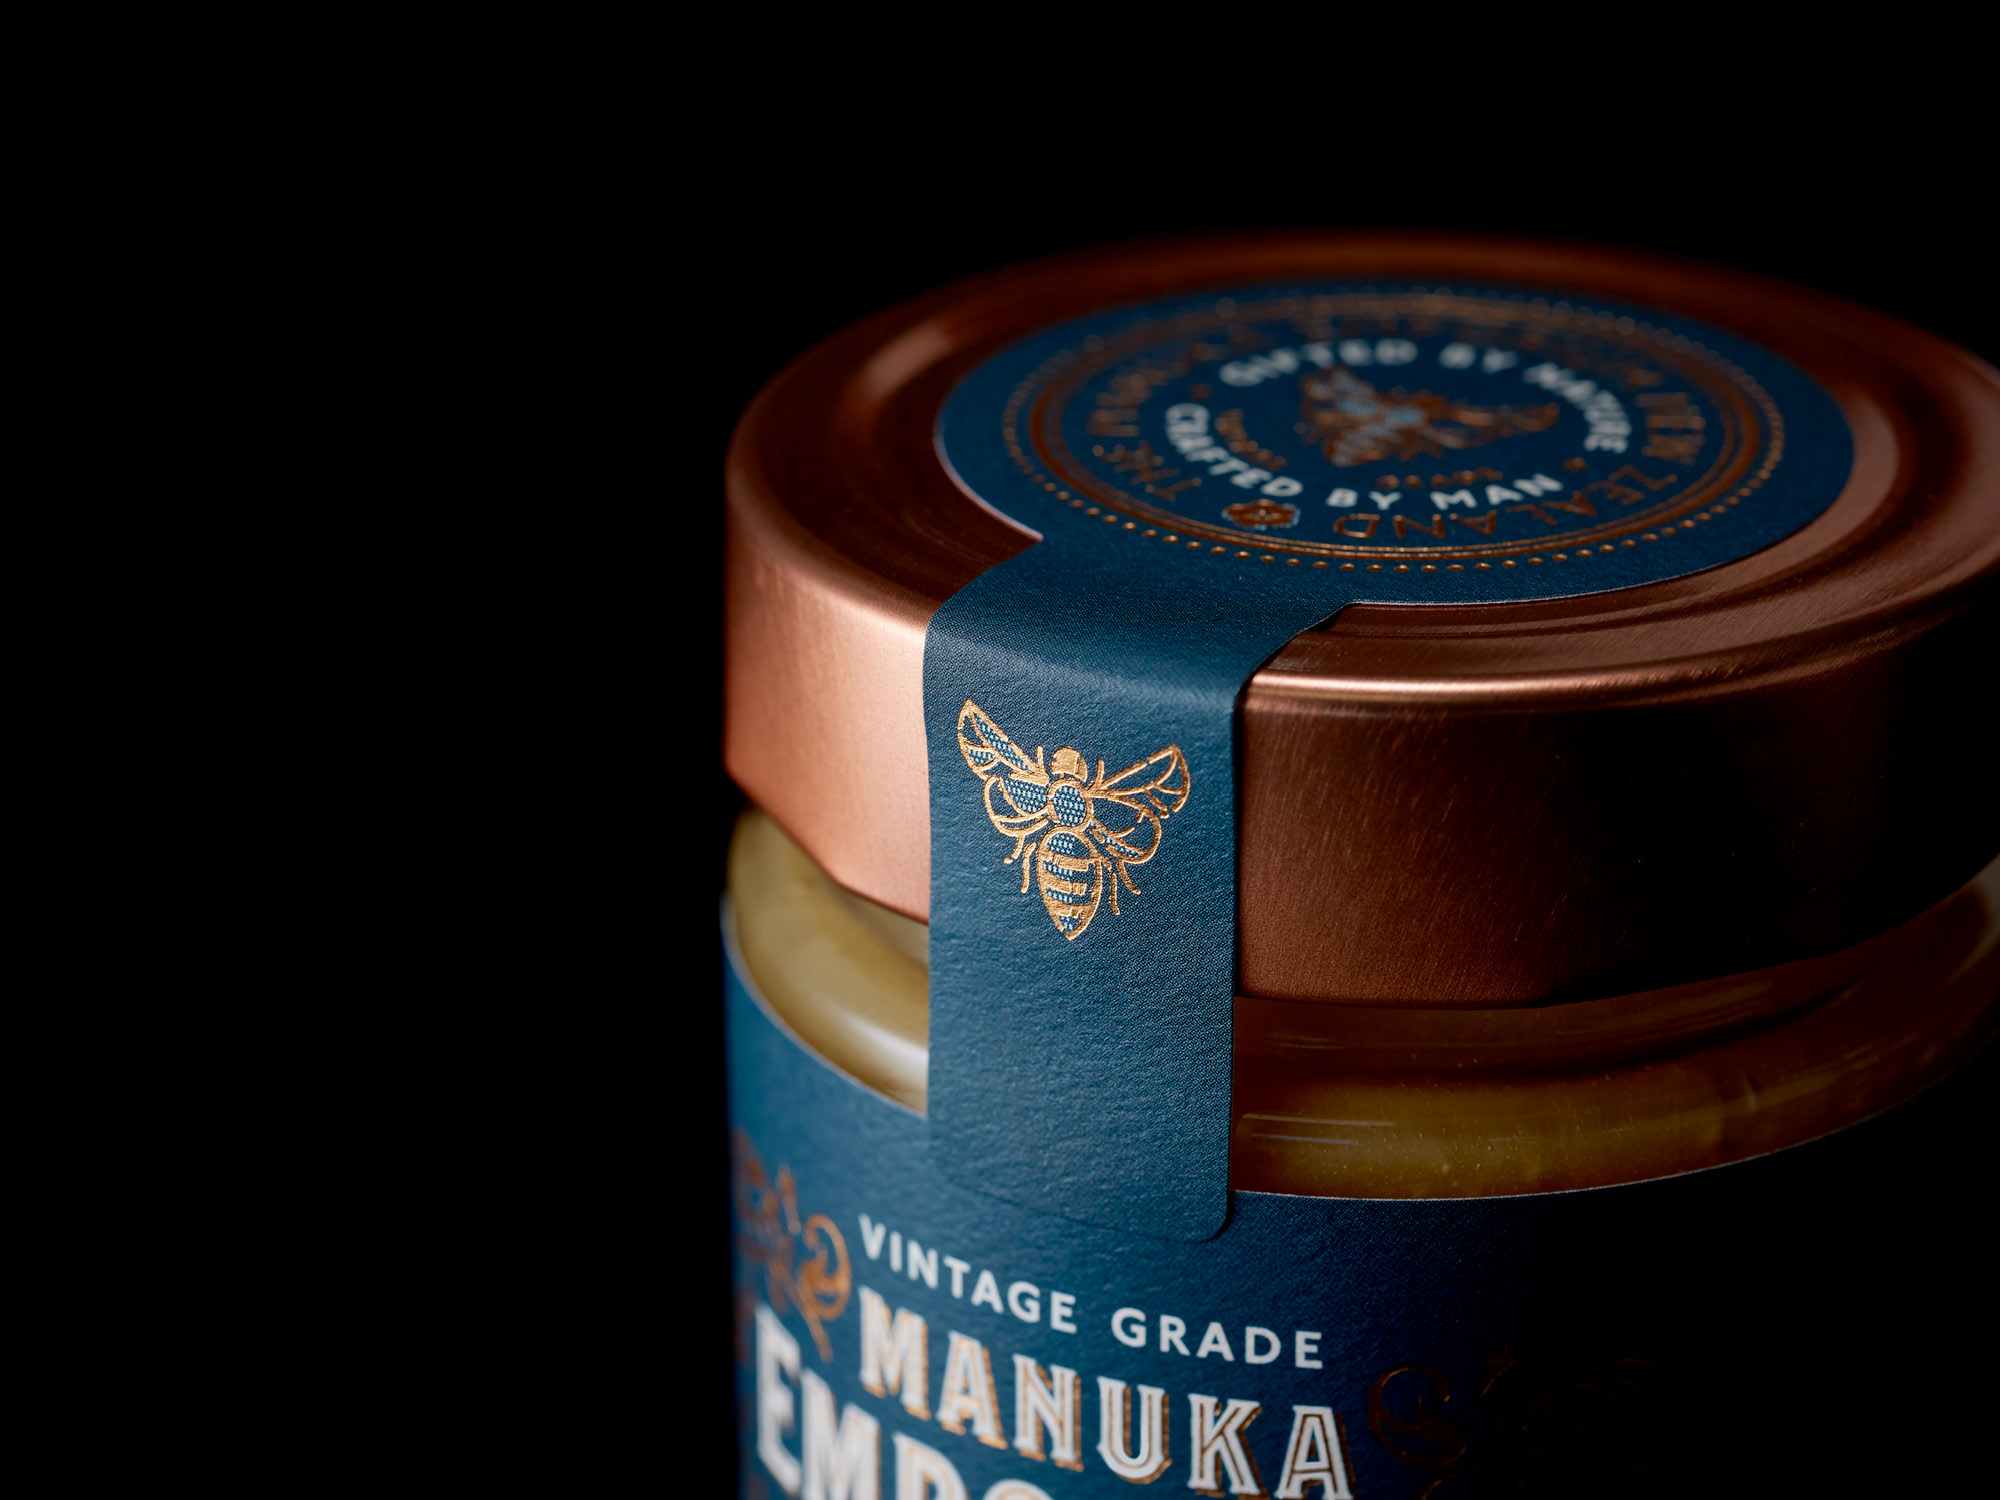 Onfire Design Manuka Emporium Honey Packaging Branding Design 23